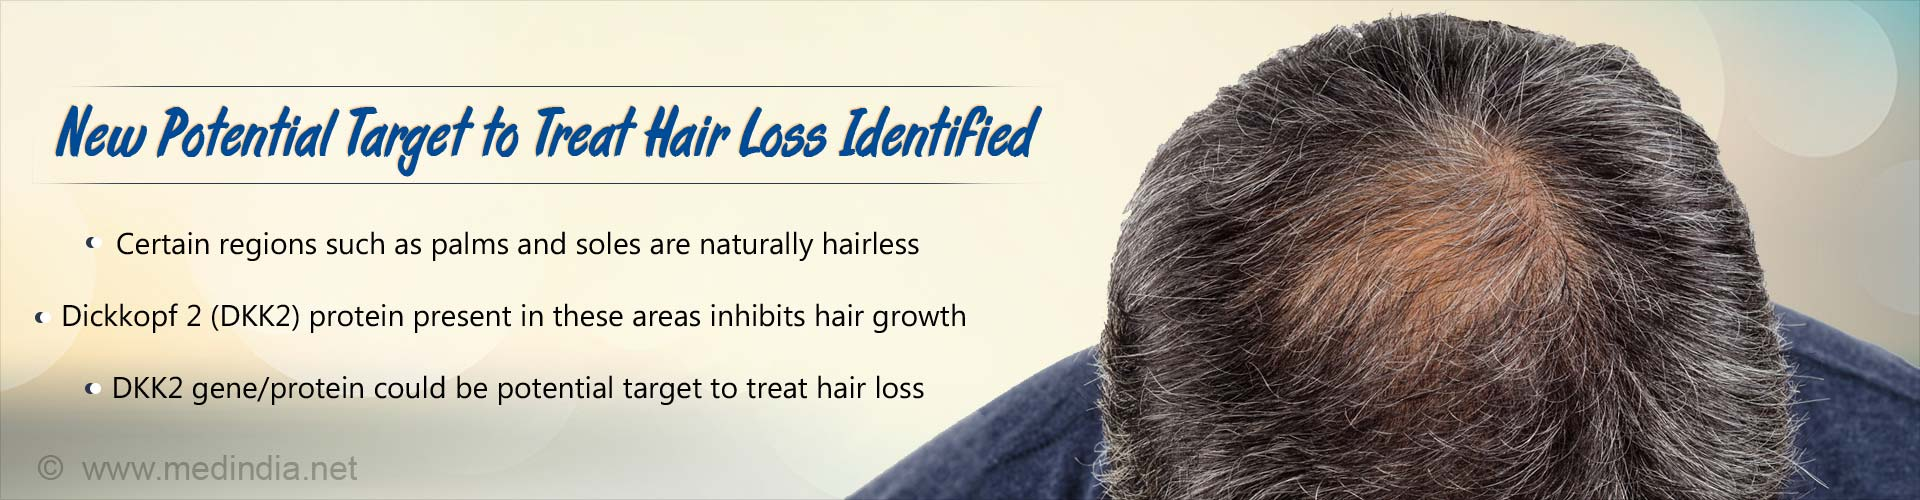 New potential target to treat hair loss identified. Certain regions such as palms and soles are naturally hairless. Dickkopf 2 (DKK2) protein present in these areas inhibits hair growth. DKK2 gene/protein could be potential target to treat hair loss.